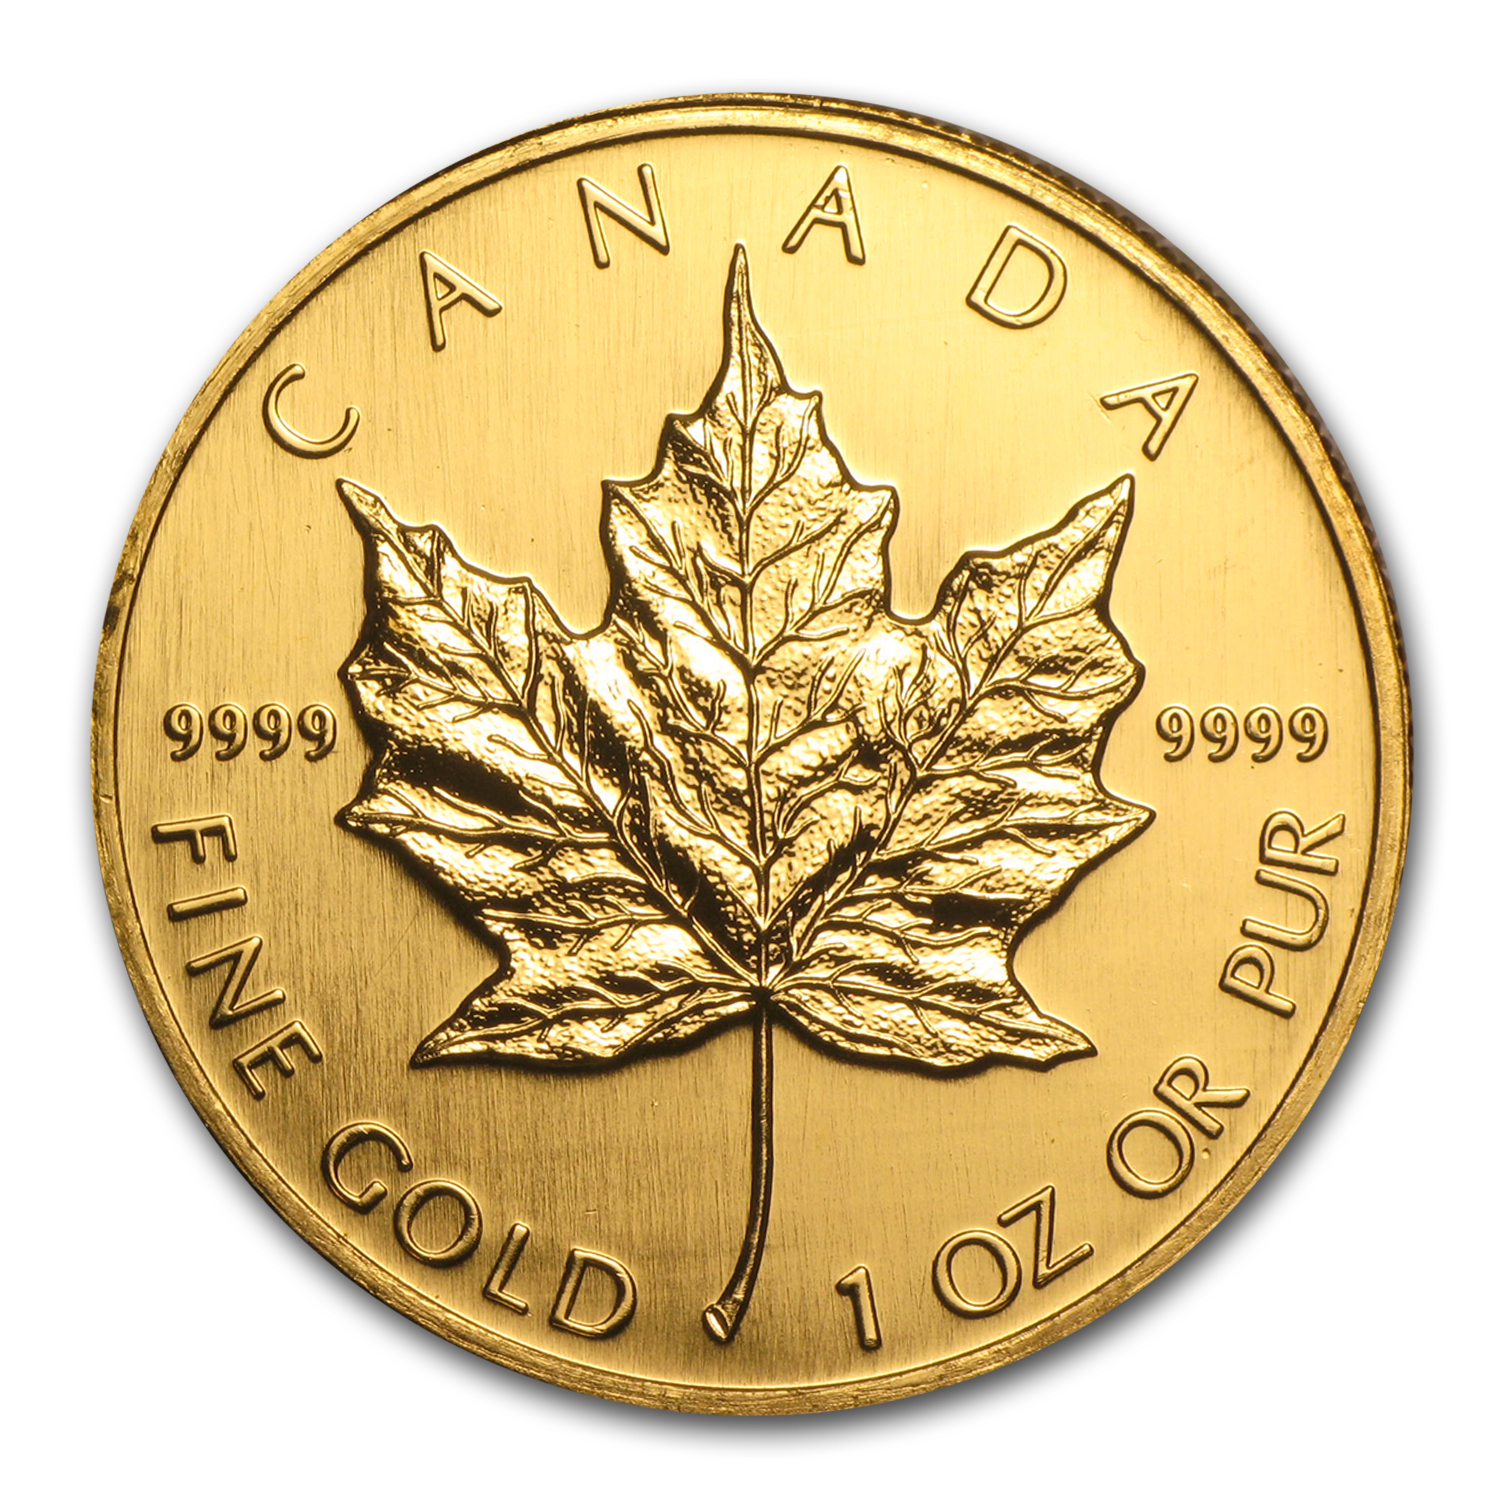 1995 Canada 1 oz Gold Maple Leaf BU